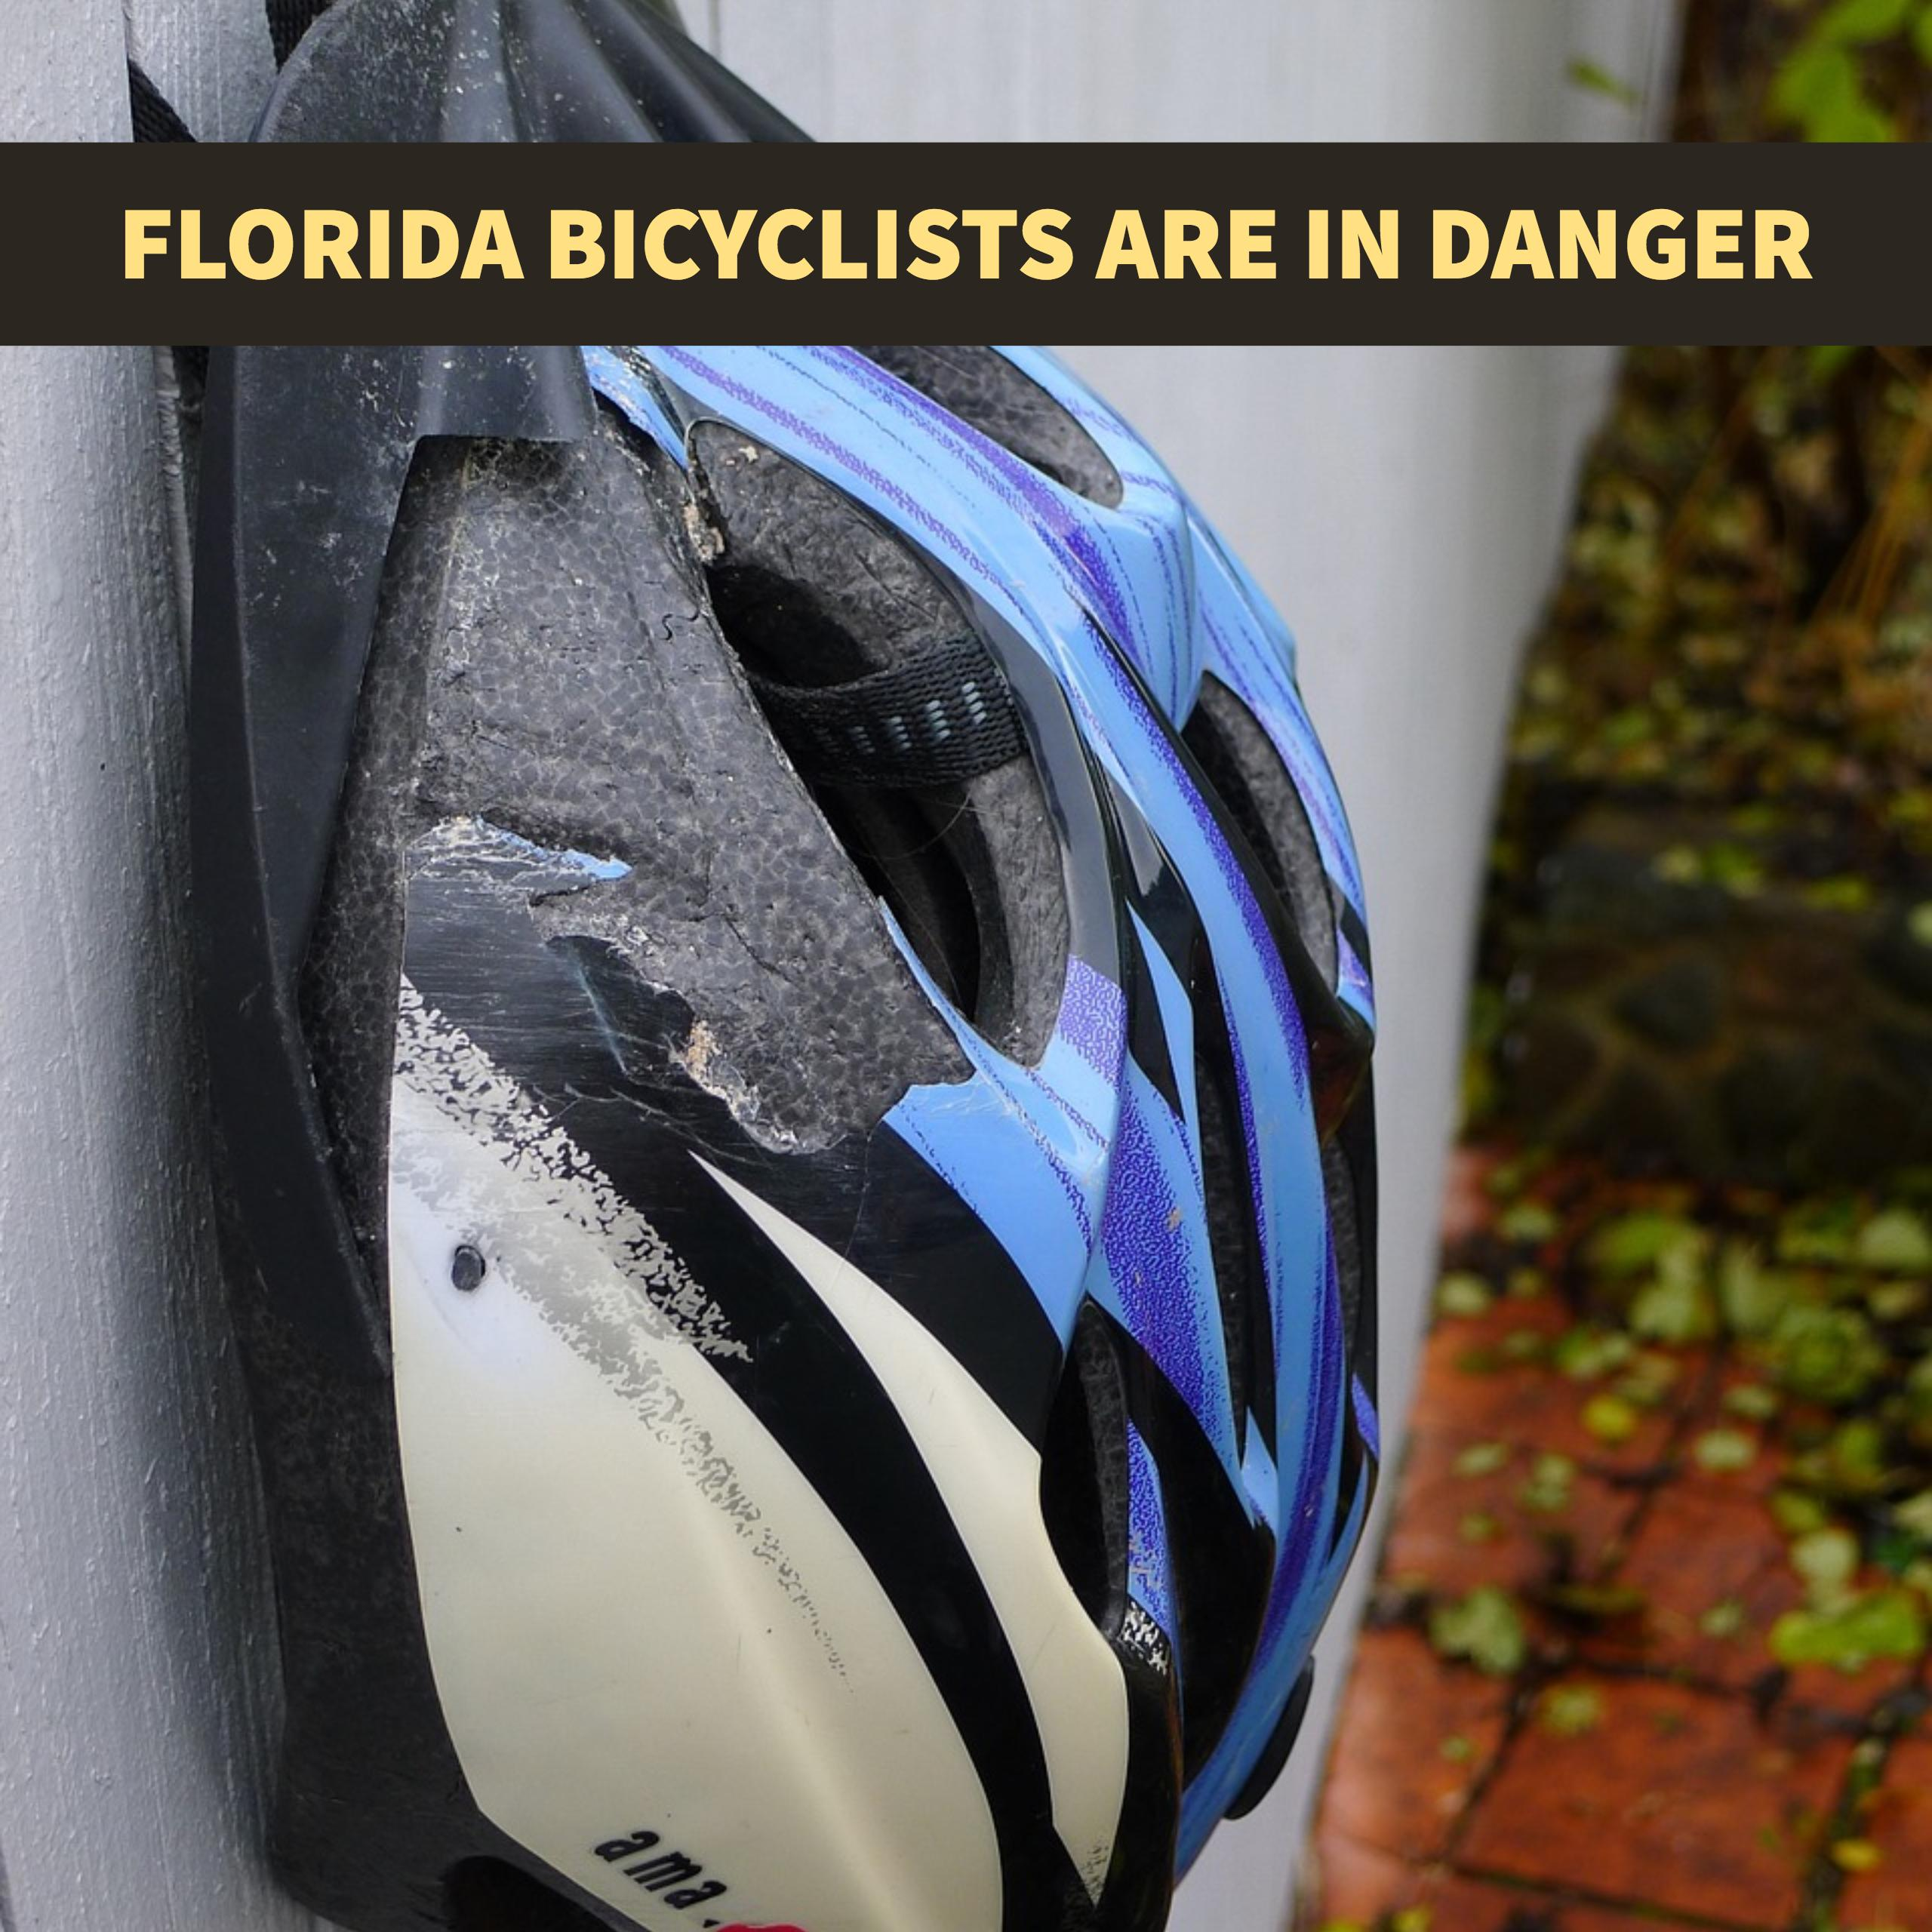 Florida's Bicyclists Are In Danger Says Boca Bike Accident